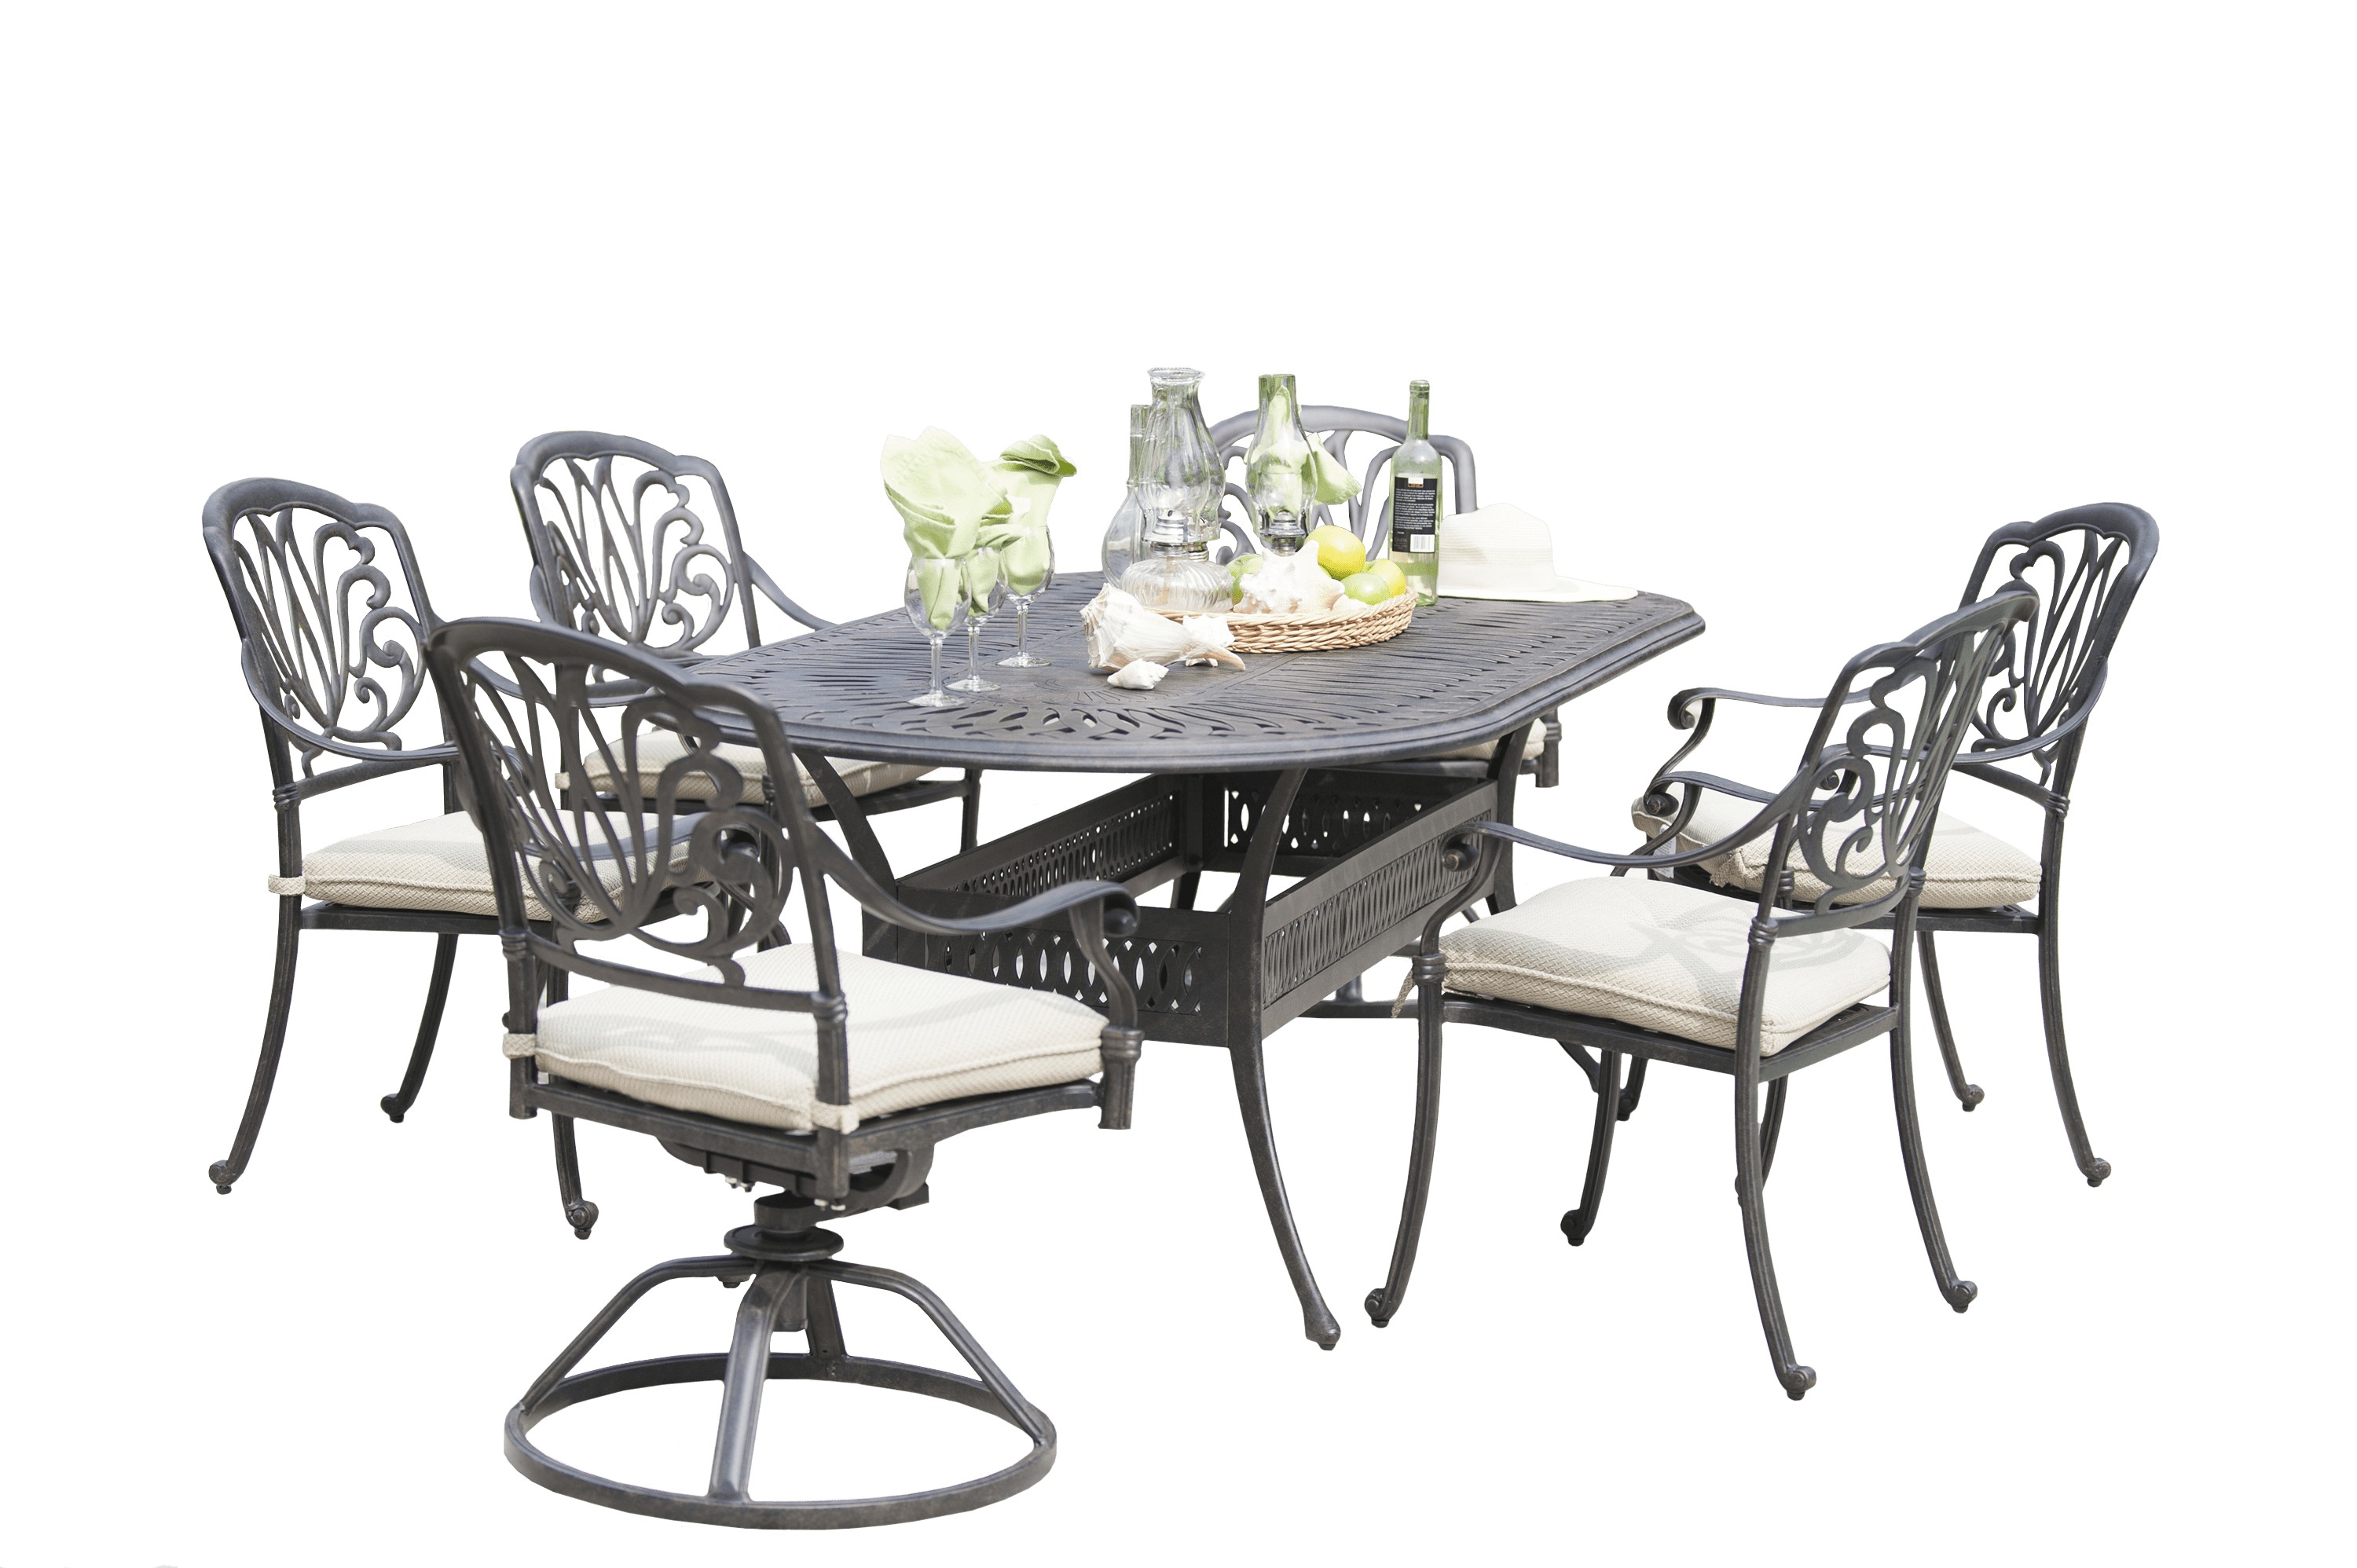 swing chair transparent outdoor fabric repair patio furniture products and accessories